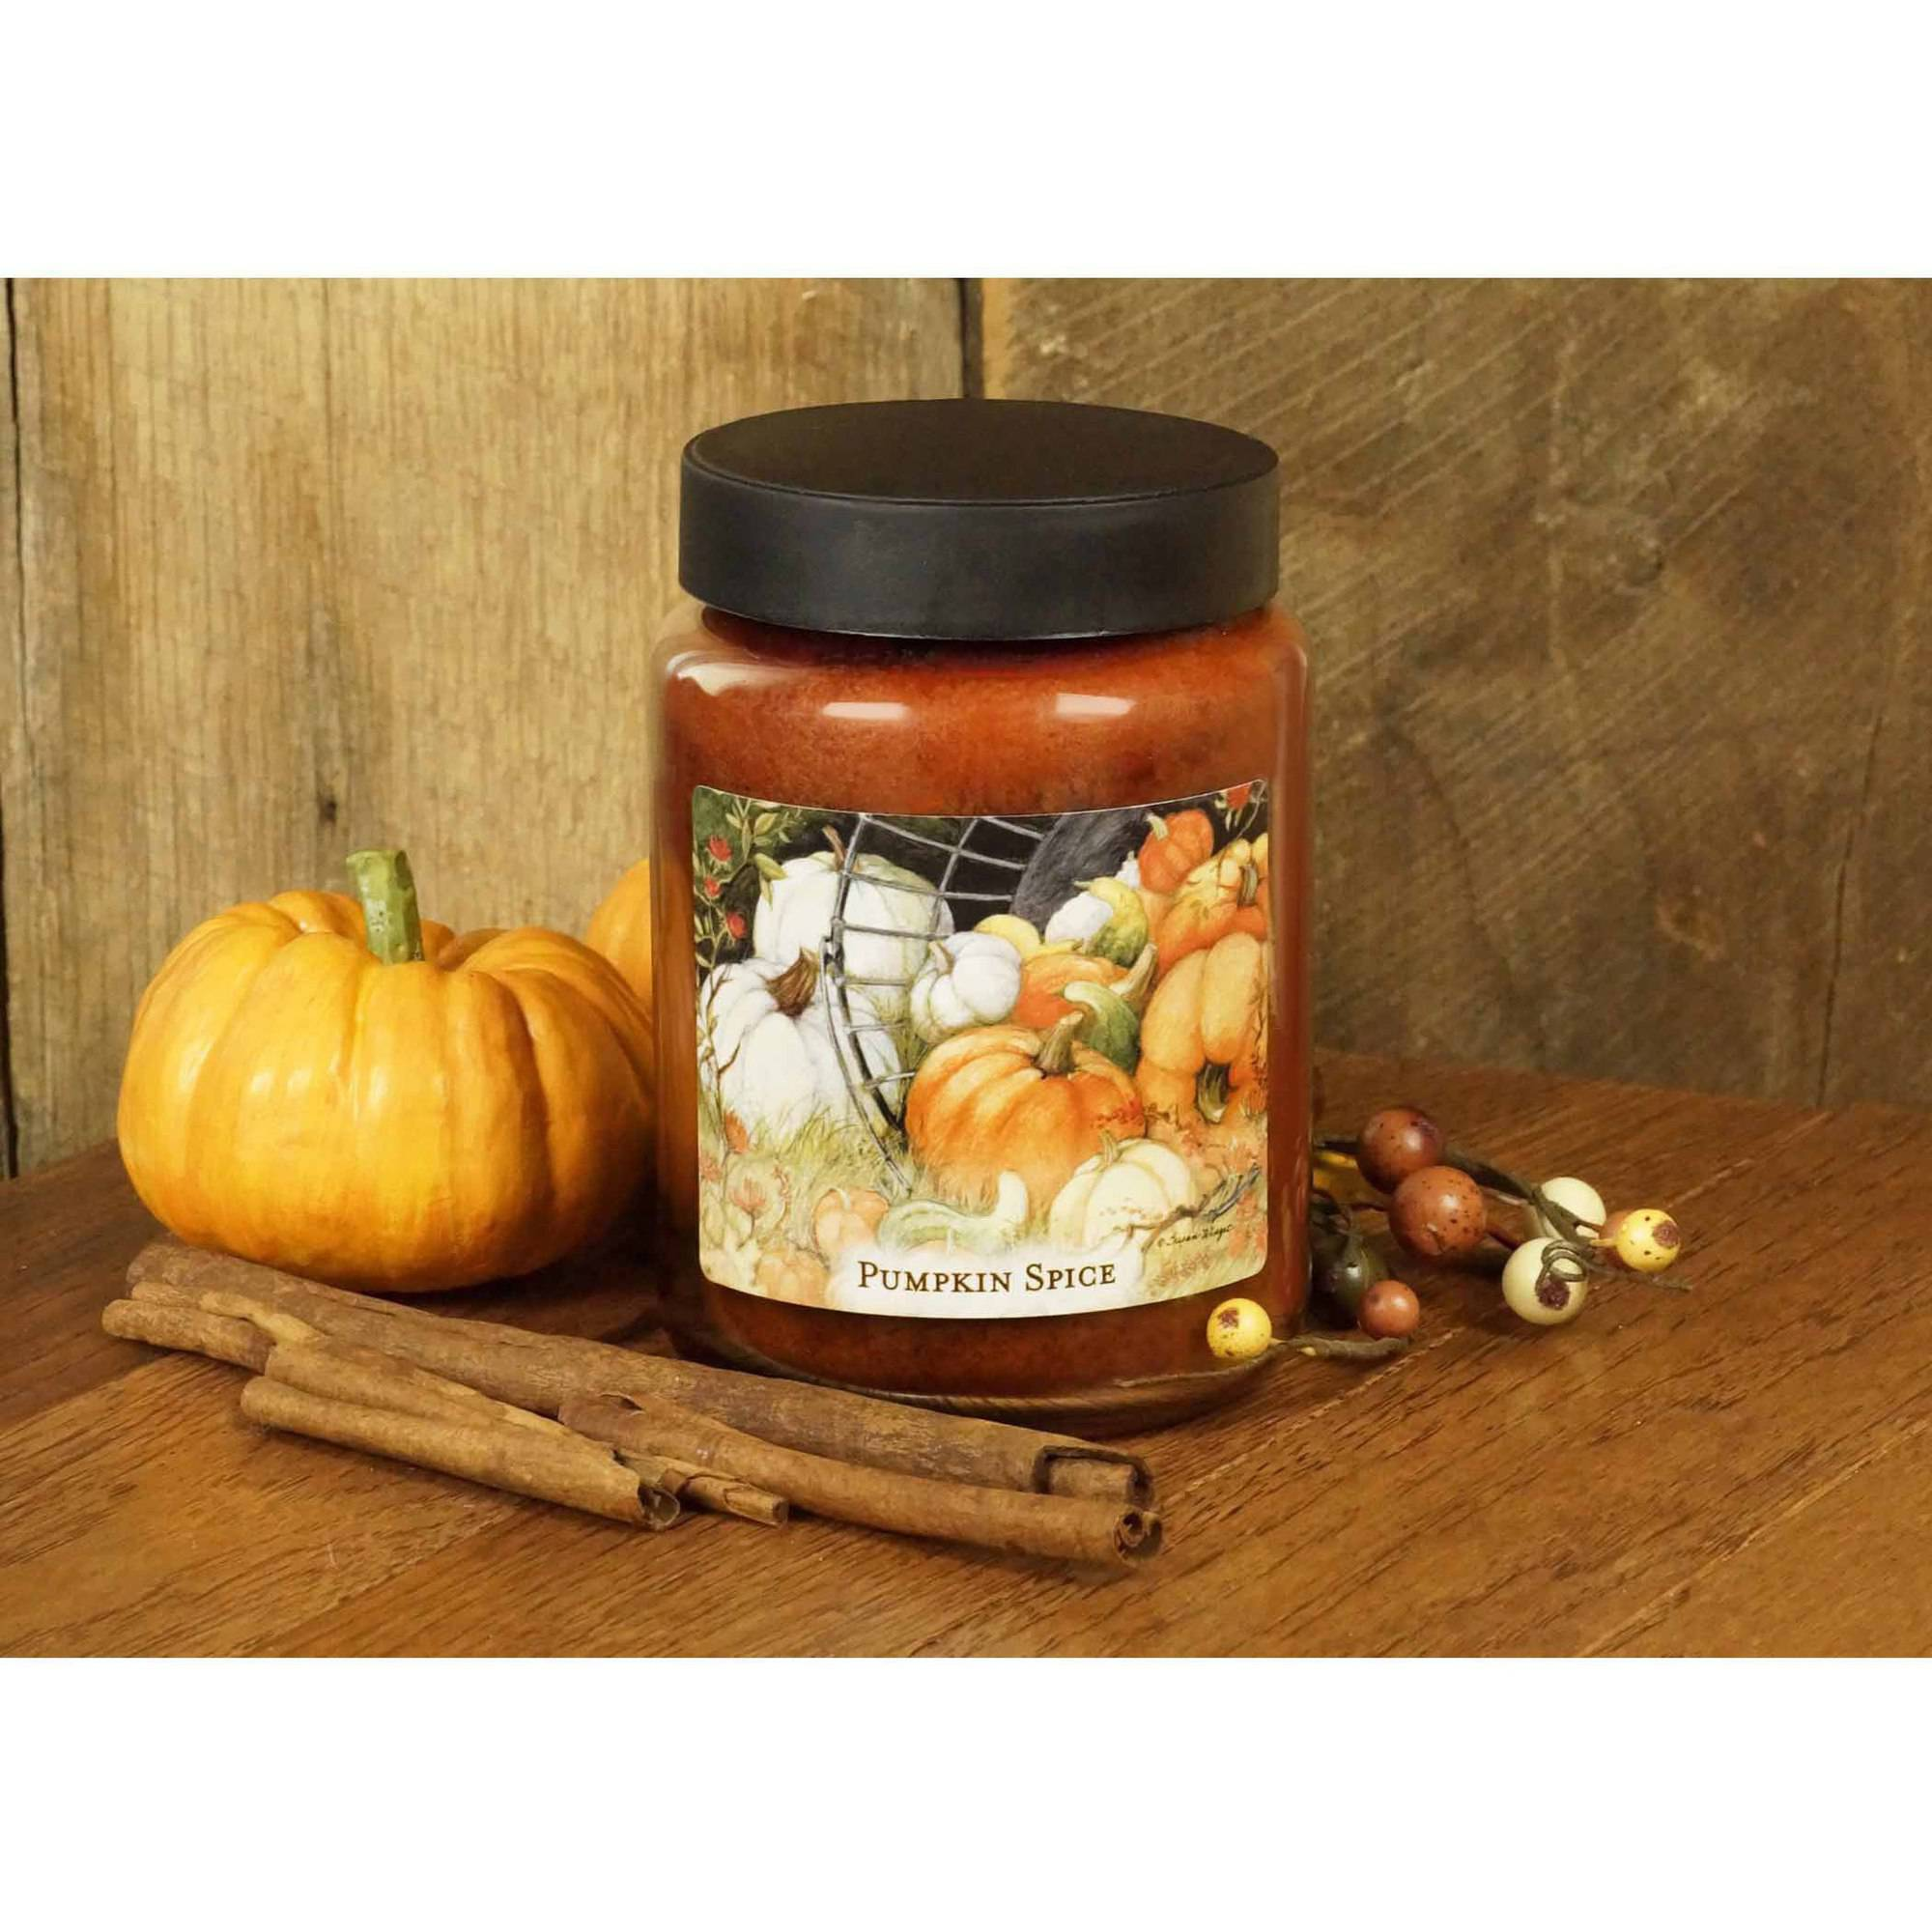 LANG Pumpkin Spice 26-Ounce Jar Candle, Scented with Pumpkin, Clove and Pumpkin Spice